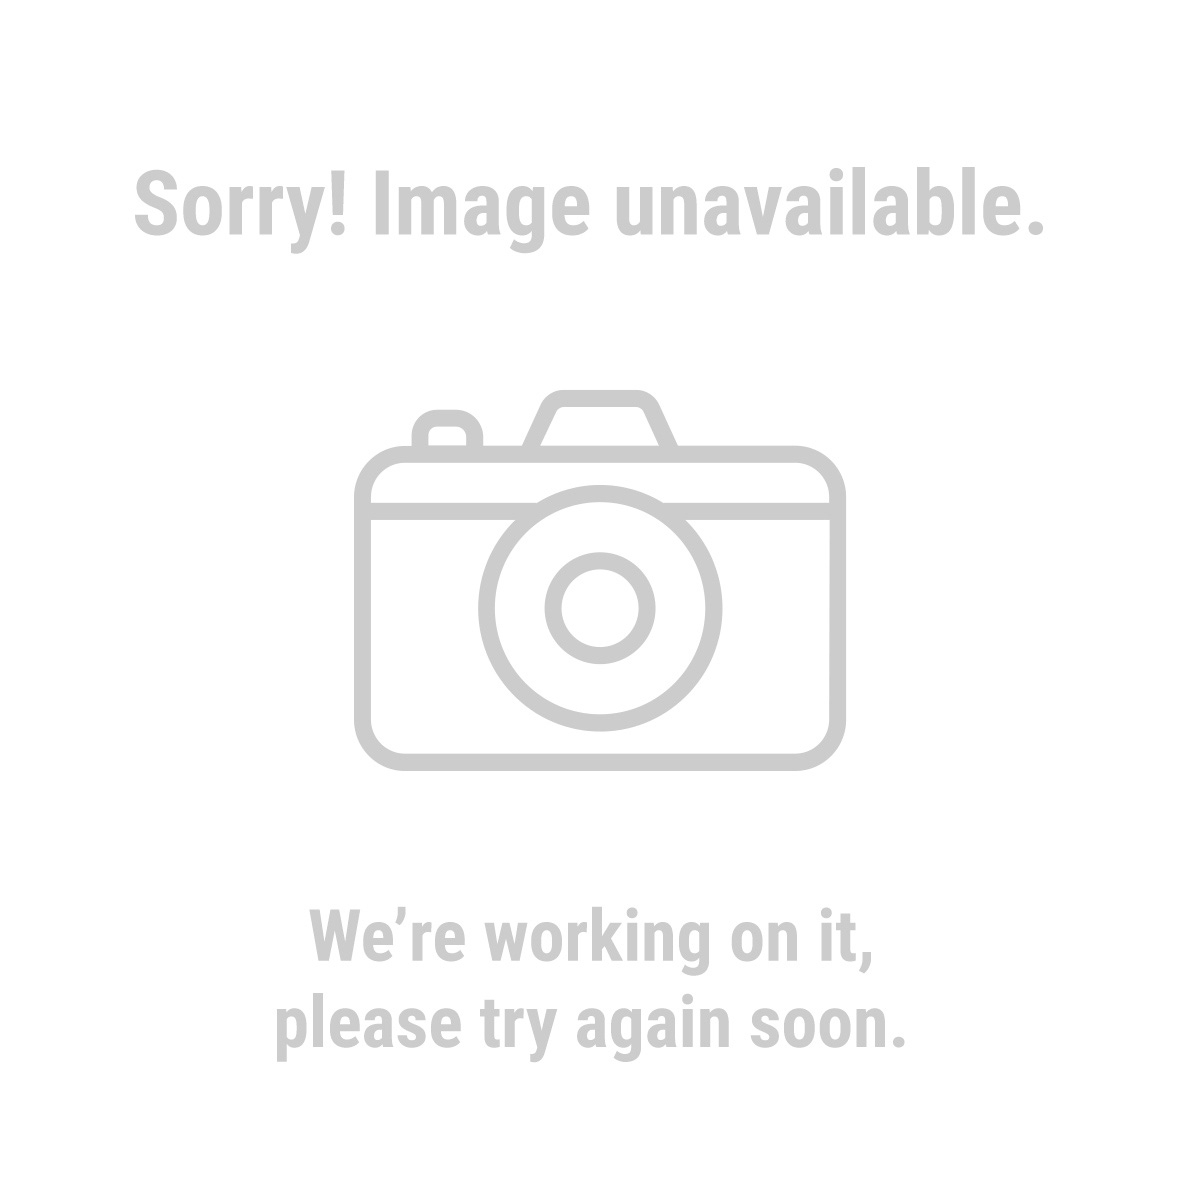 Badland Winches 62278 9000 lb. Off-Road Vehicle Electric Winch with Automatic Load-Holding Brake